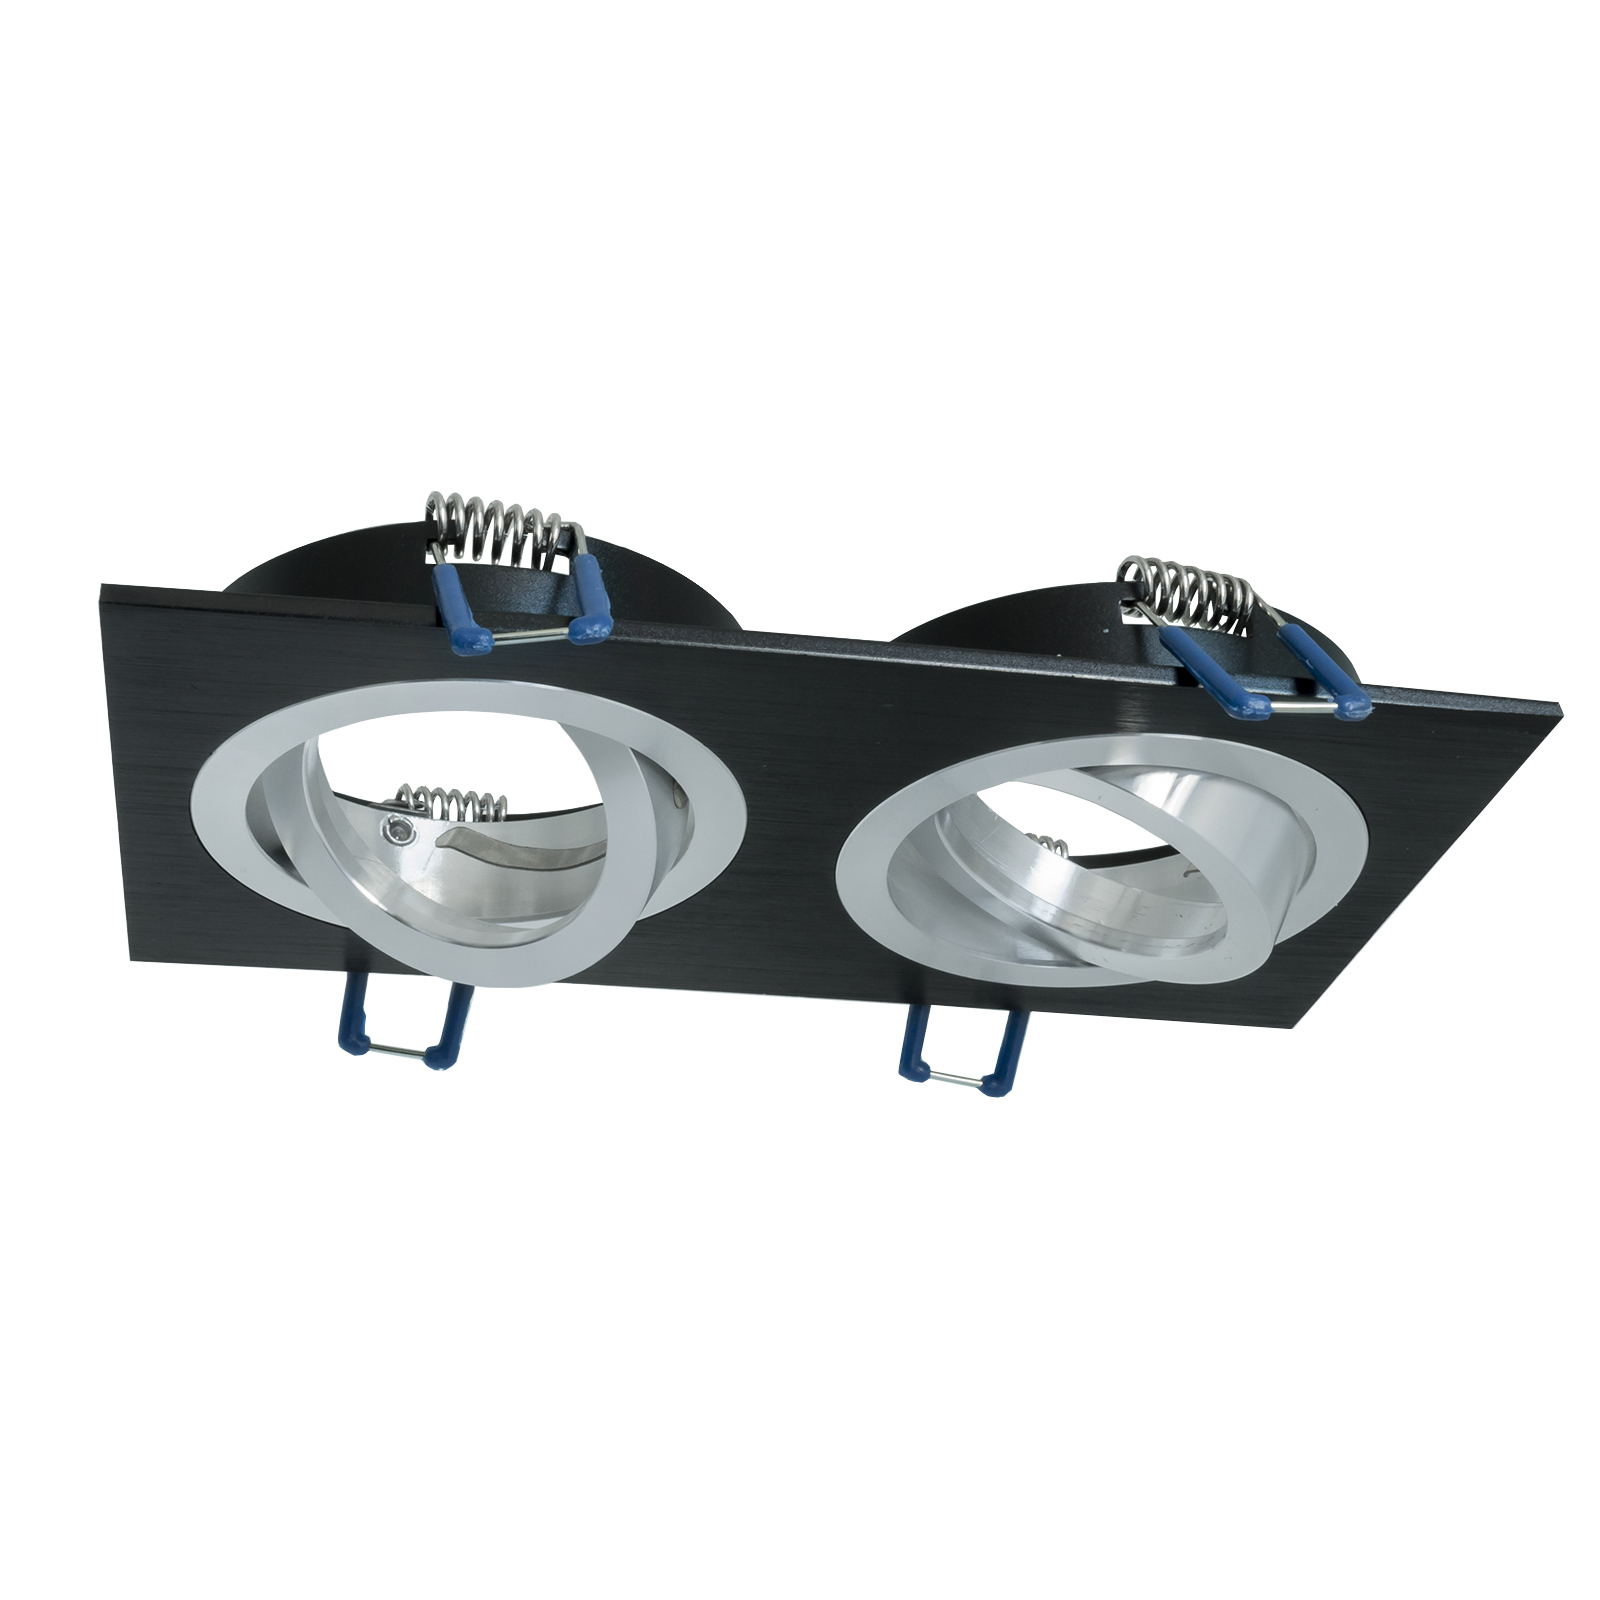 Portafaretto rectangular black flush 155x80mm twin light adjustable LED GU10